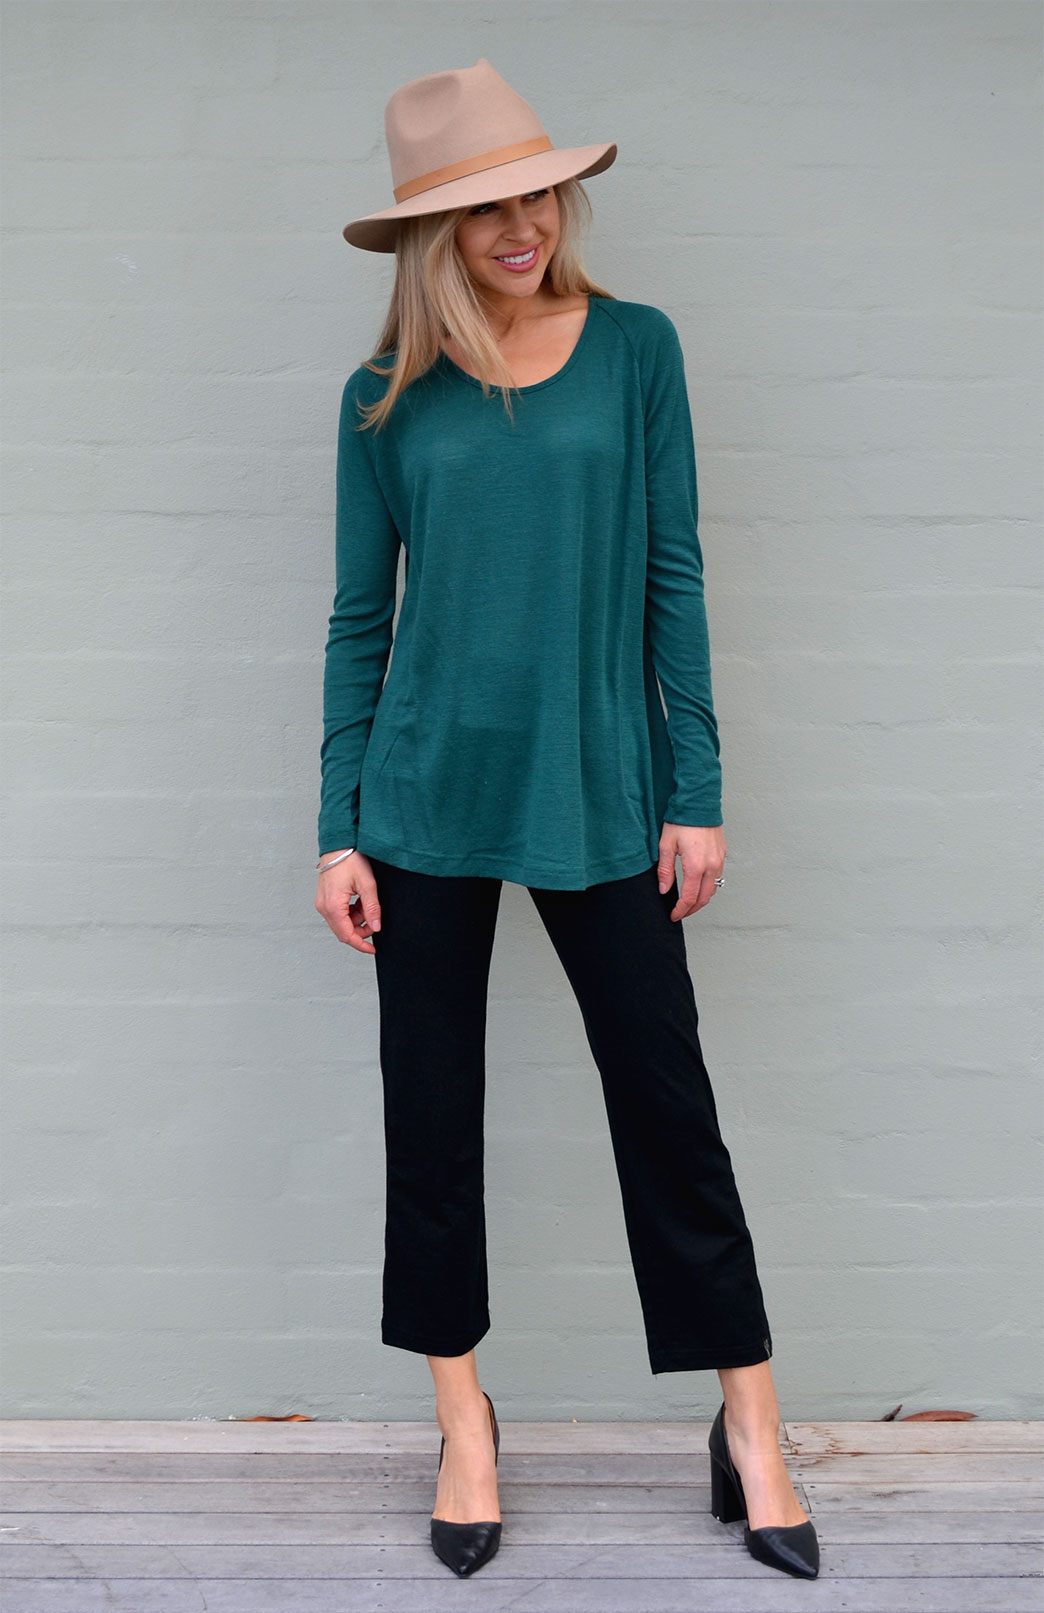 Rana Top - Women's Emerald Green Pure Merino Wool Top with Long Sleeves, Scooped Neckline and Curved Hem - Smitten Merino Tasmania Australia